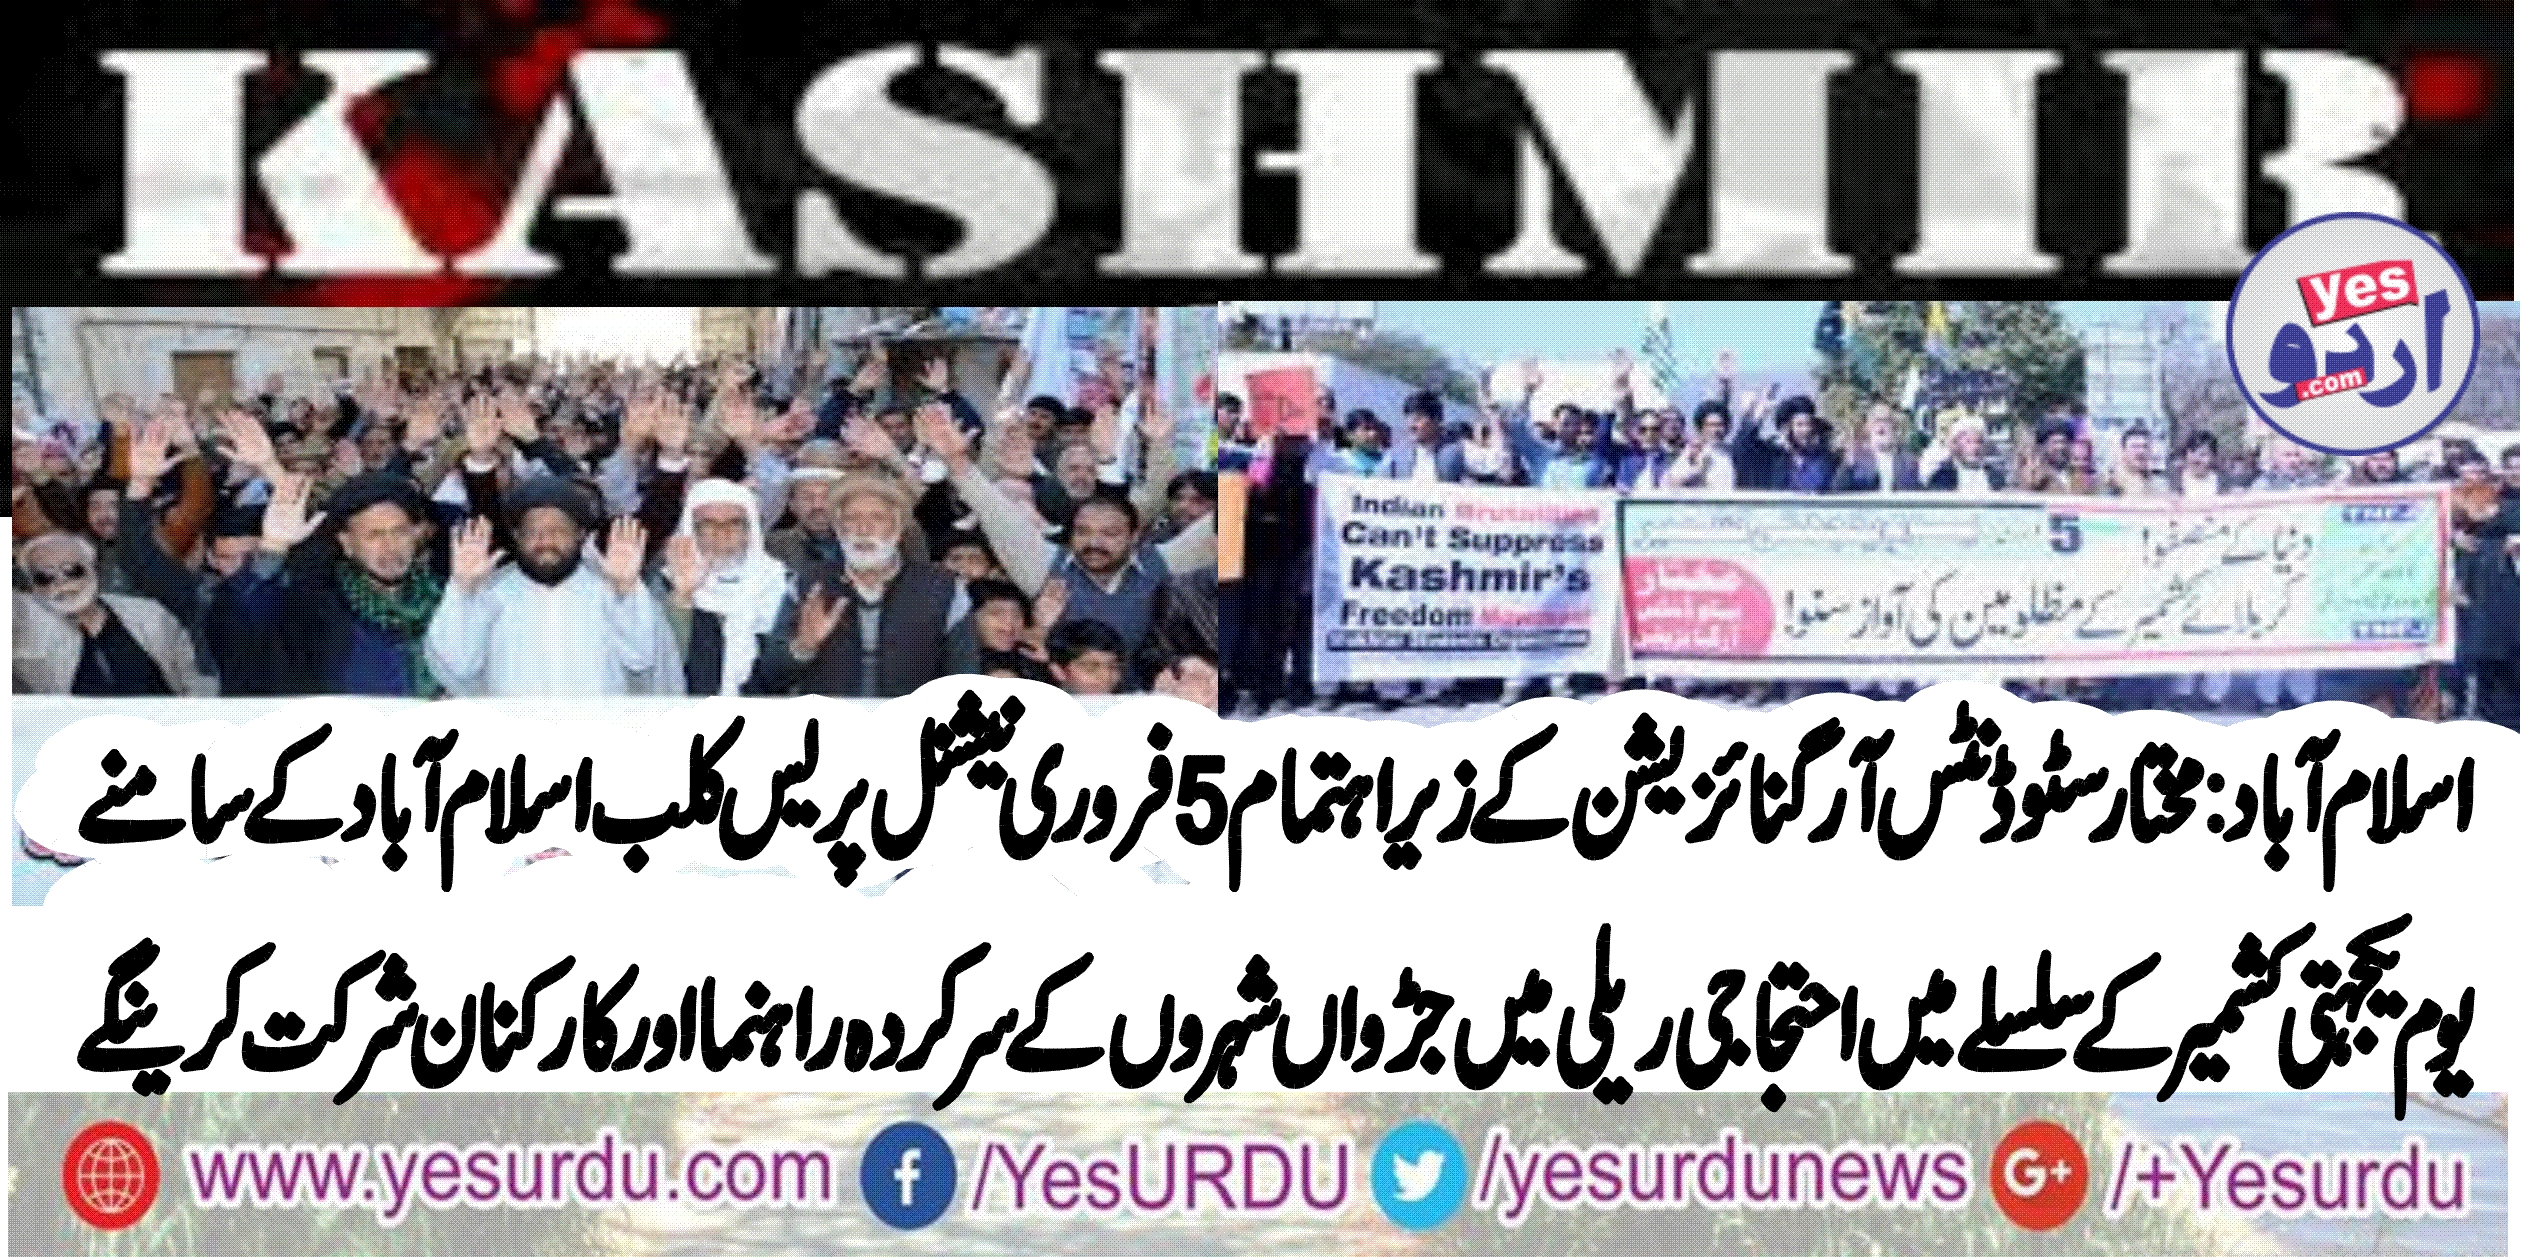 KASHMIR, DAY, 5TH, FEBRUARY, RALLY, IN, FRONT, OF, NATIONAL, PRESS, CLUB, ISLAMABAD, ORGANIZED, BY, MSO